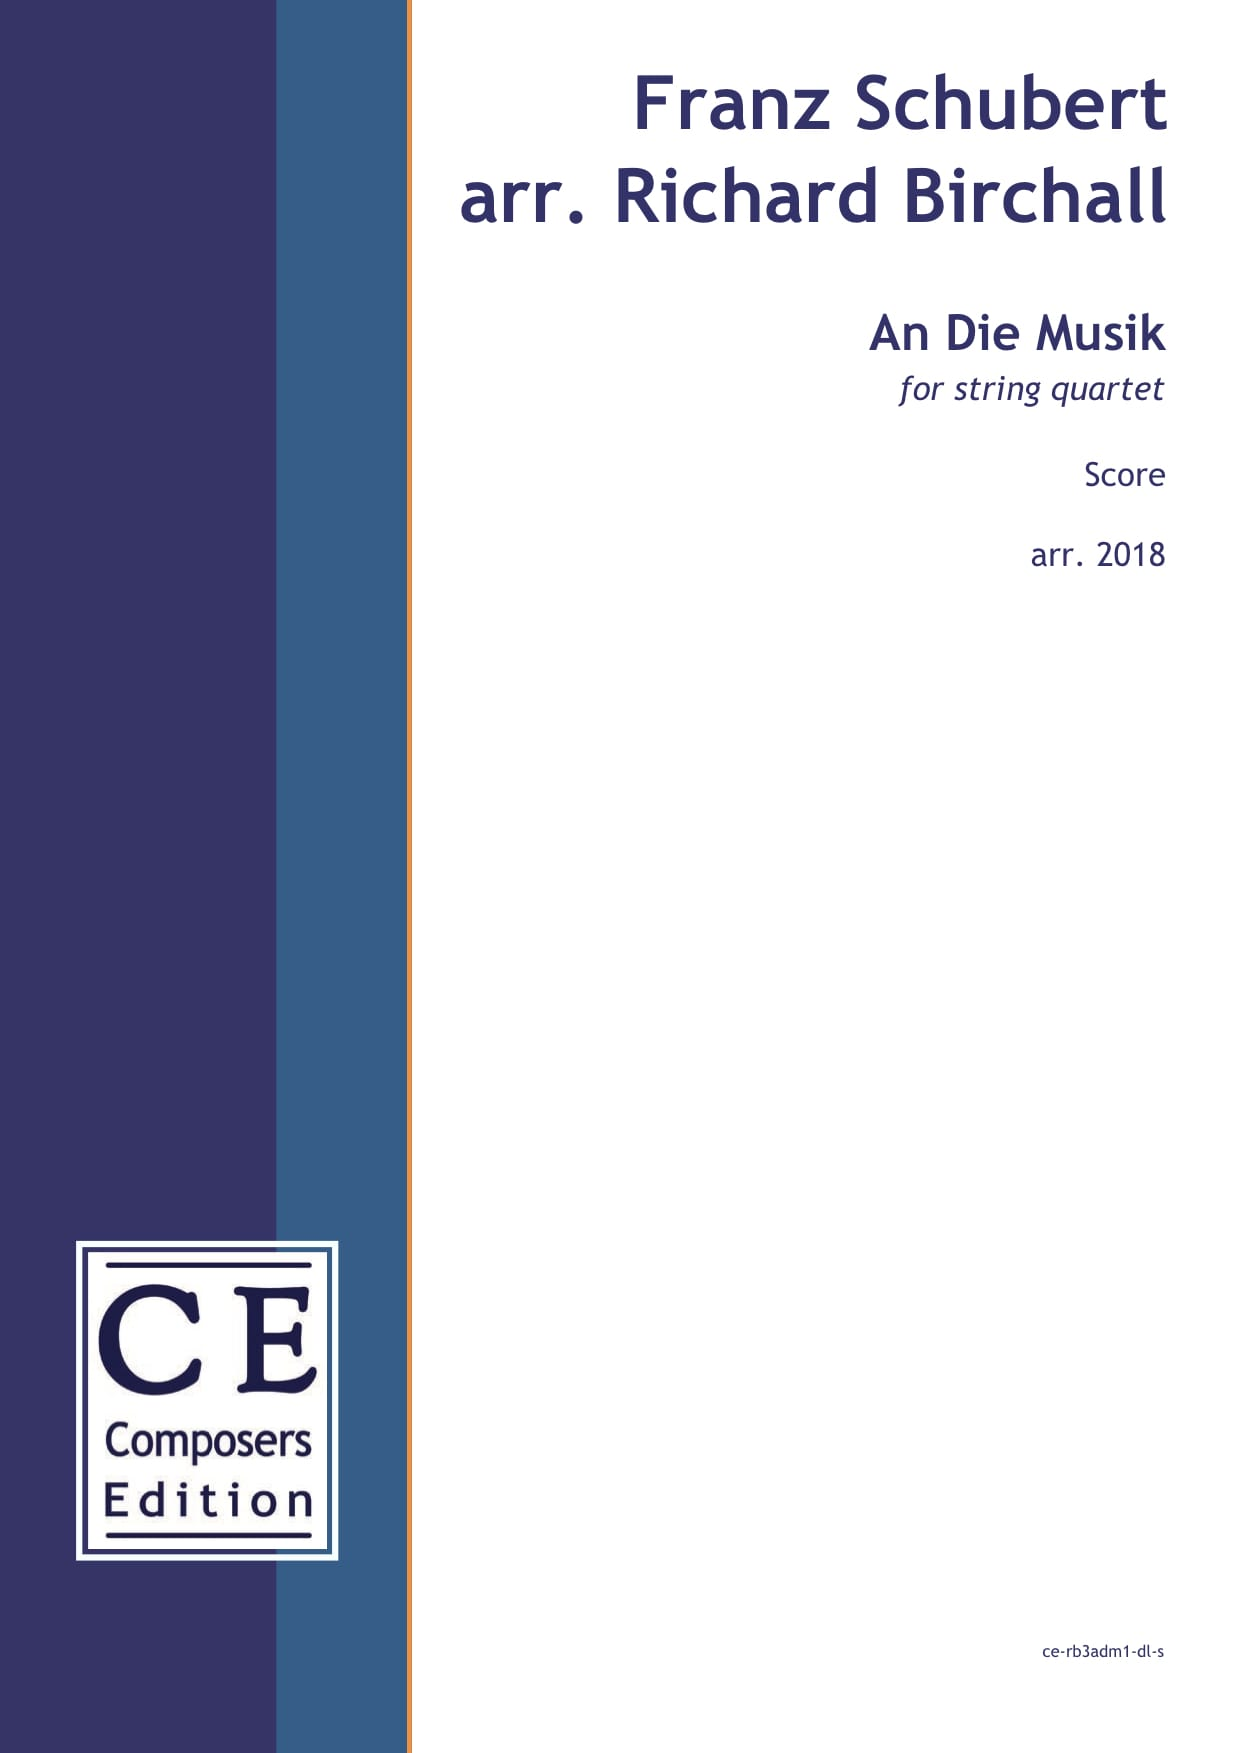 Franz Schubert arr. Richard Birchall: An Die Musik for string quartet